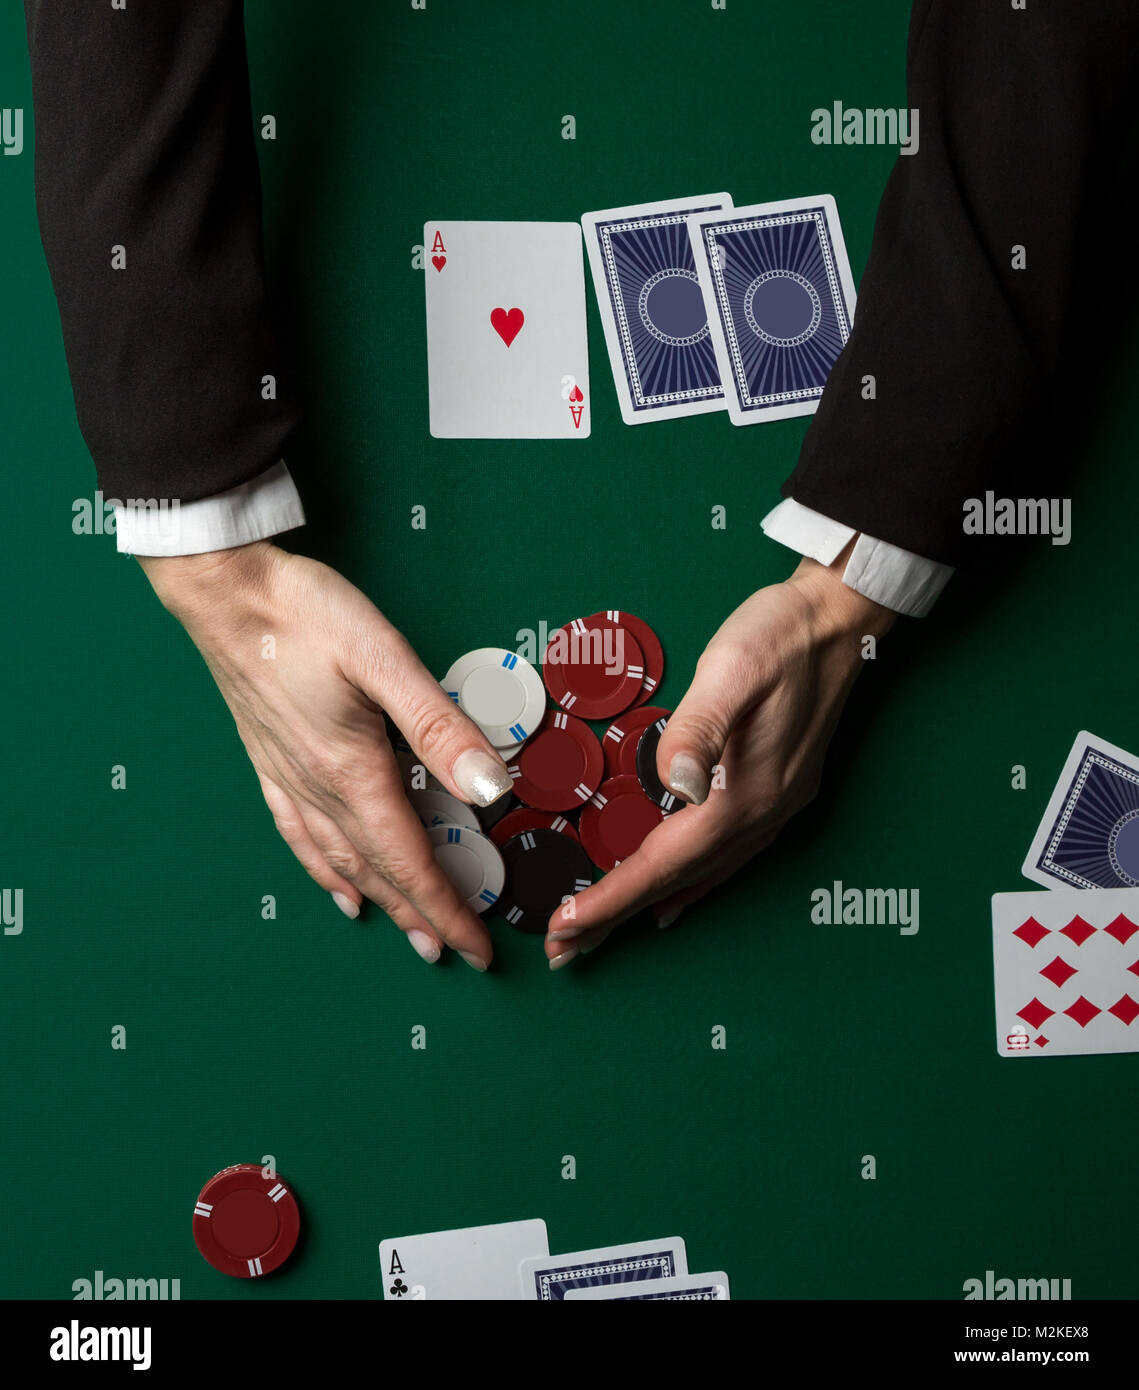 Top view of a poker table during a game.  Chips and cards on the table. - Stock Image